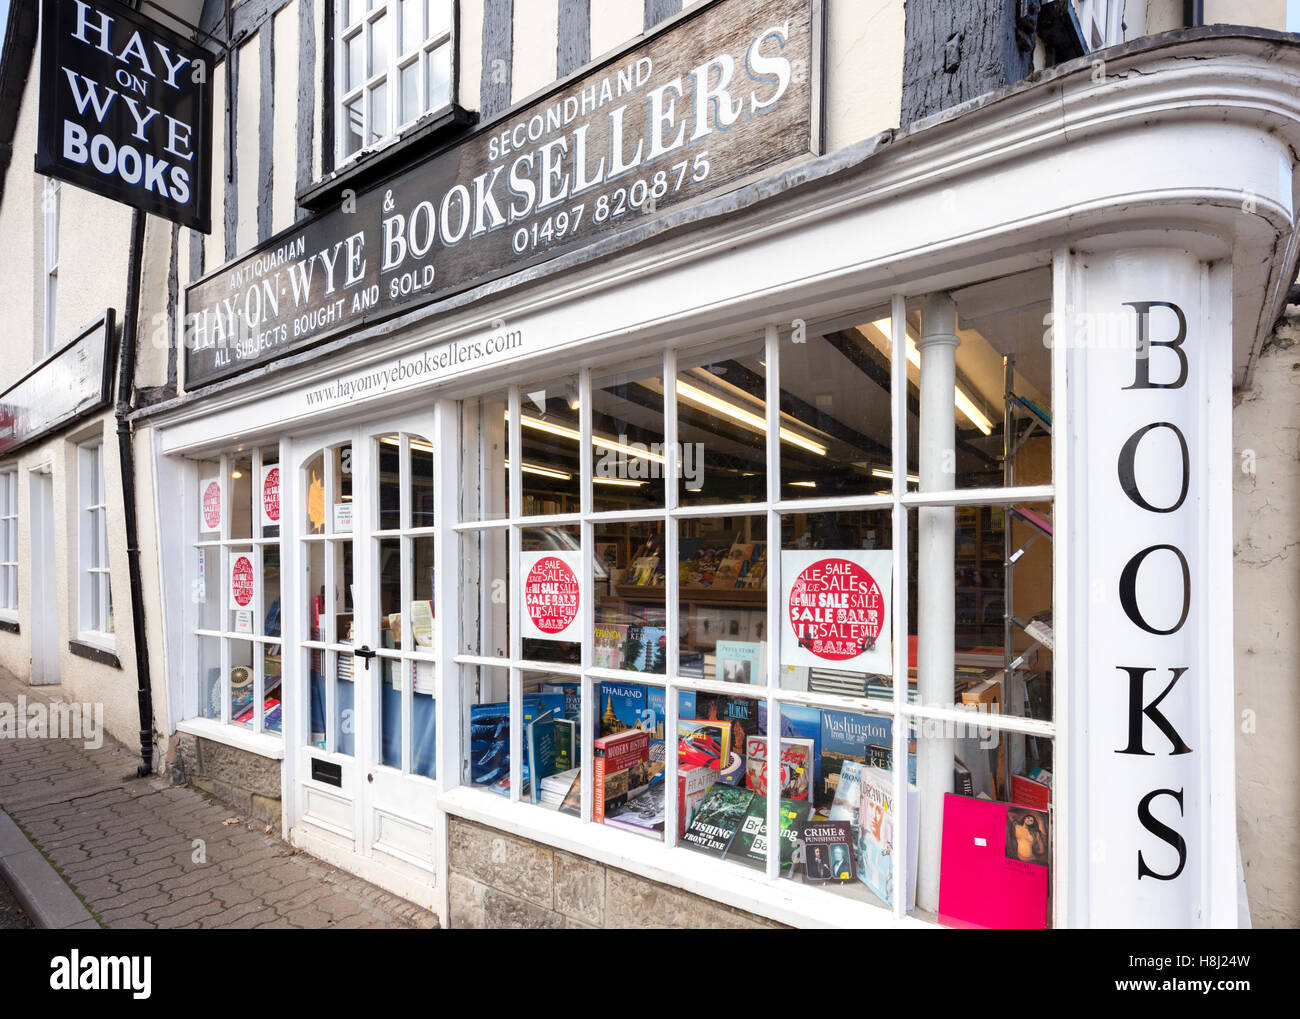 Independent book shop in Hay on Wye, Brecknockshire, Wales, UK - Stock Image